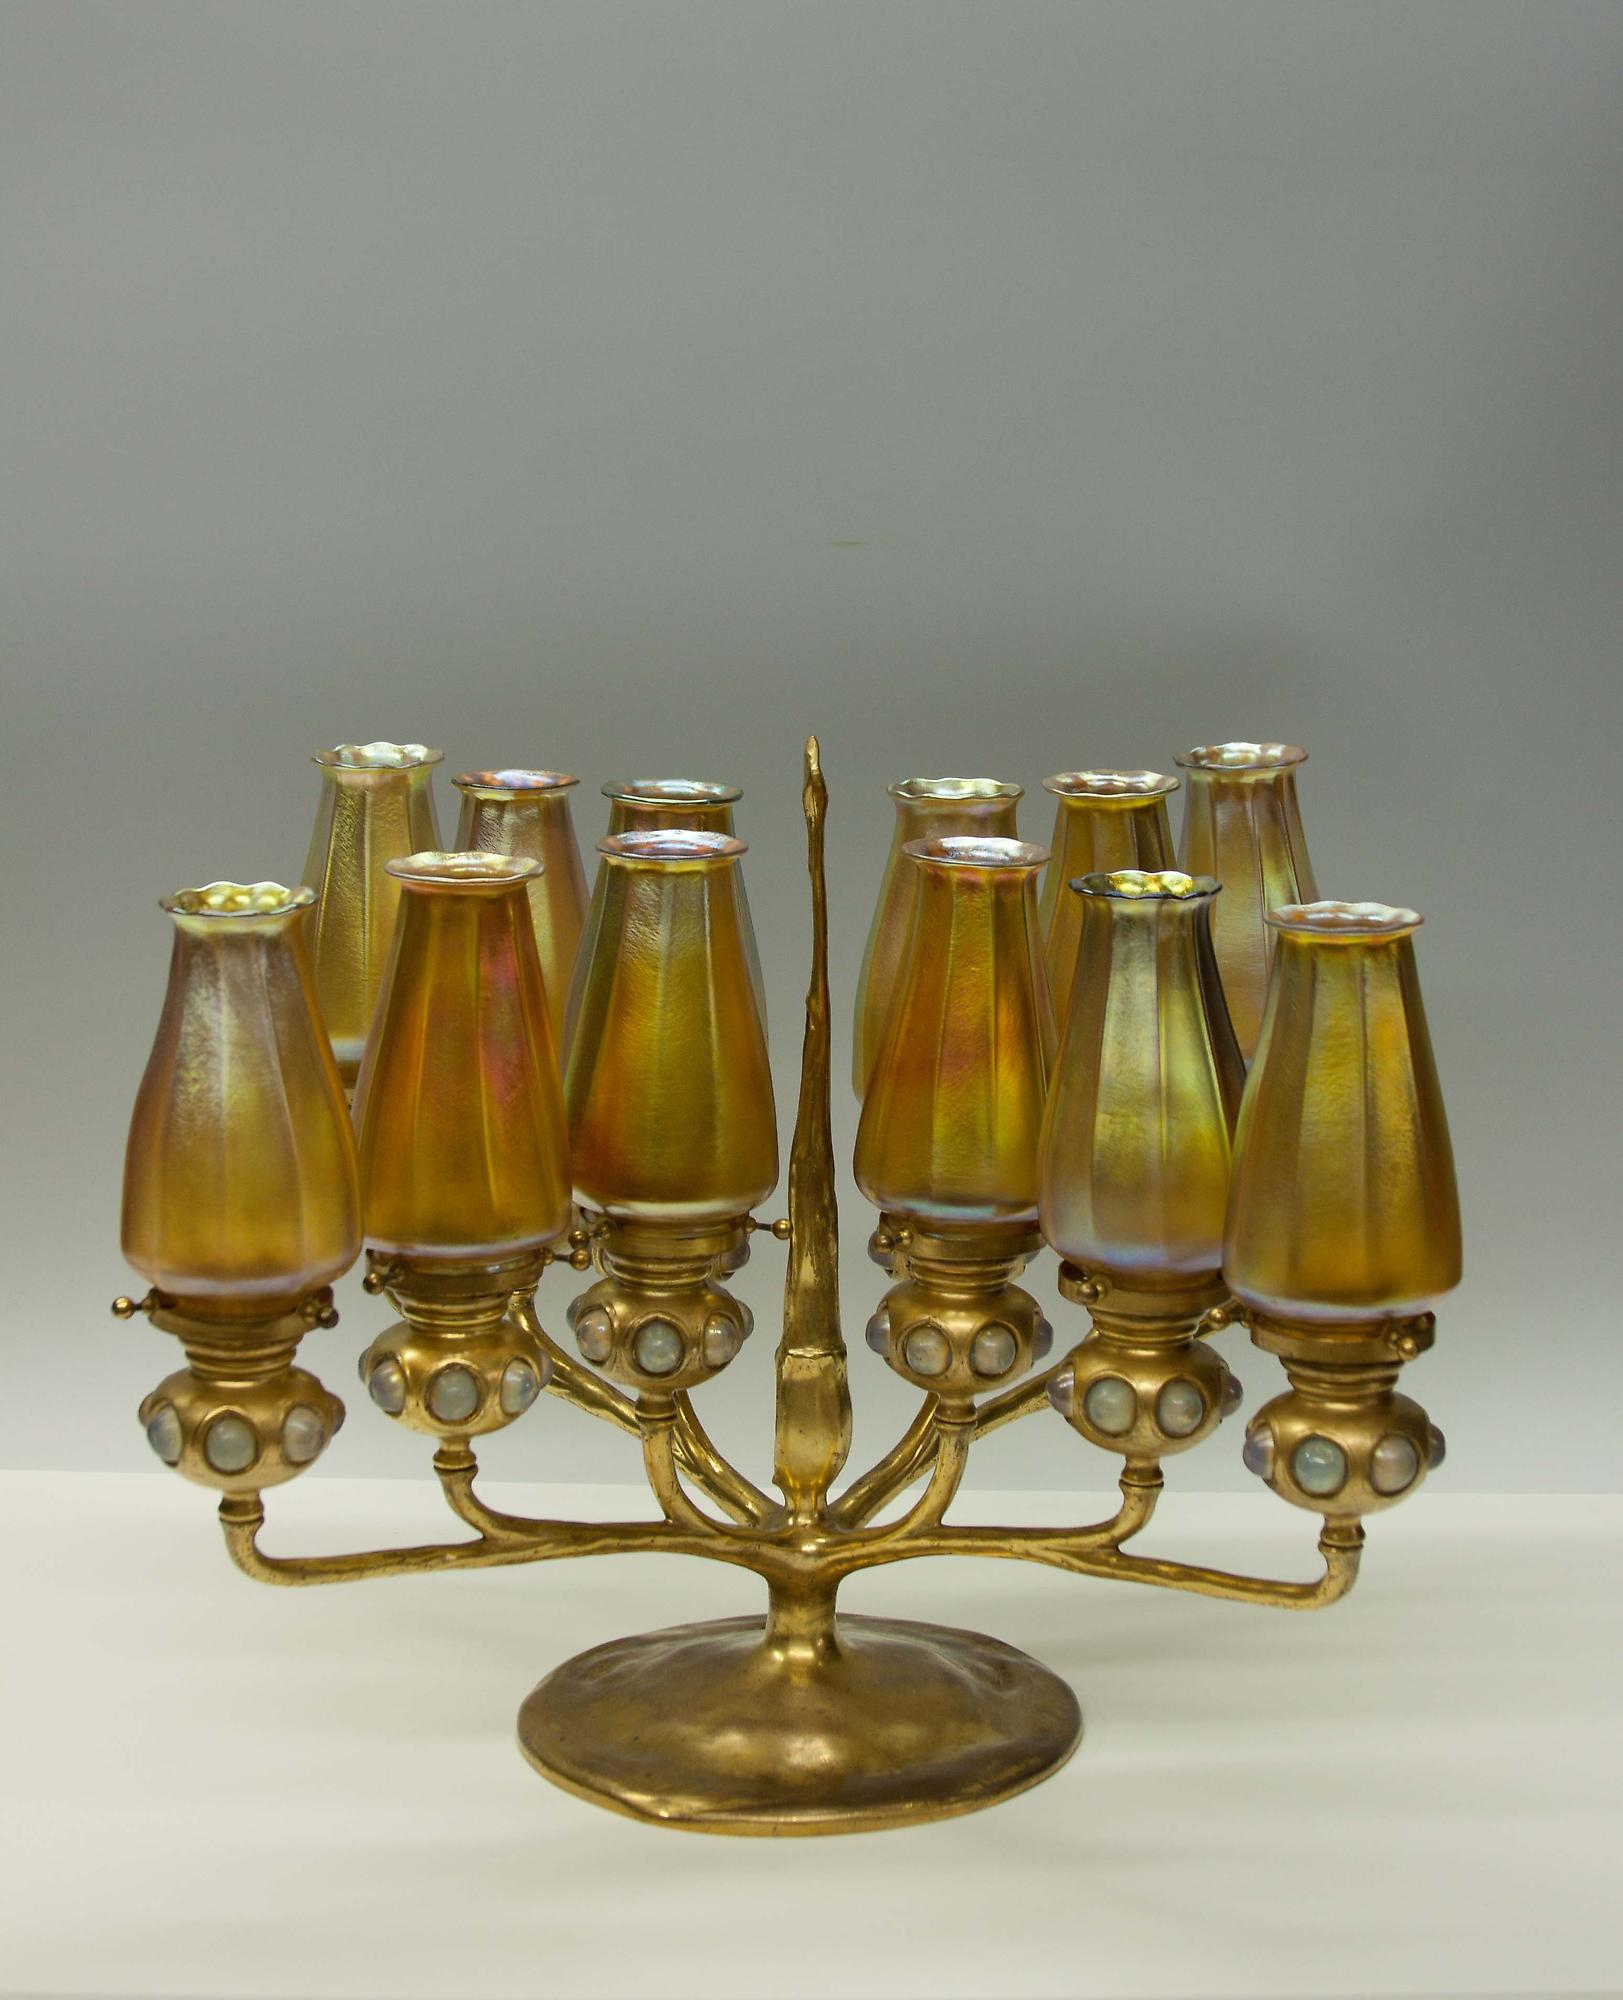 Tiffany Studios 12-Light Candelabrum 1